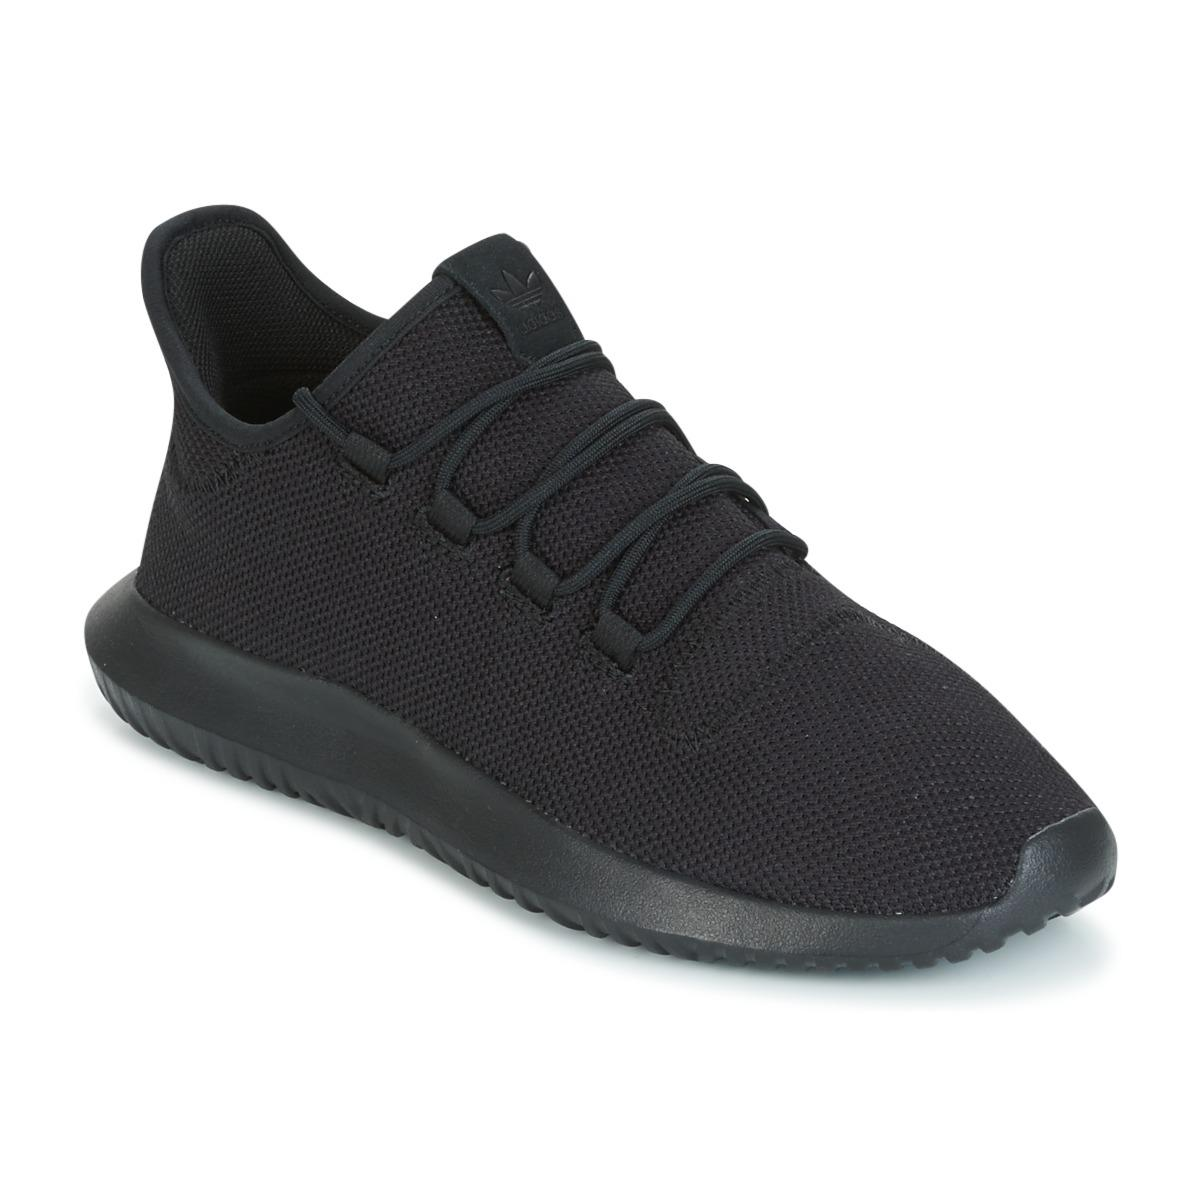 426c75815df4 adidas Tubular Shadow Men s Shoes (trainers) In Black in Black for ...